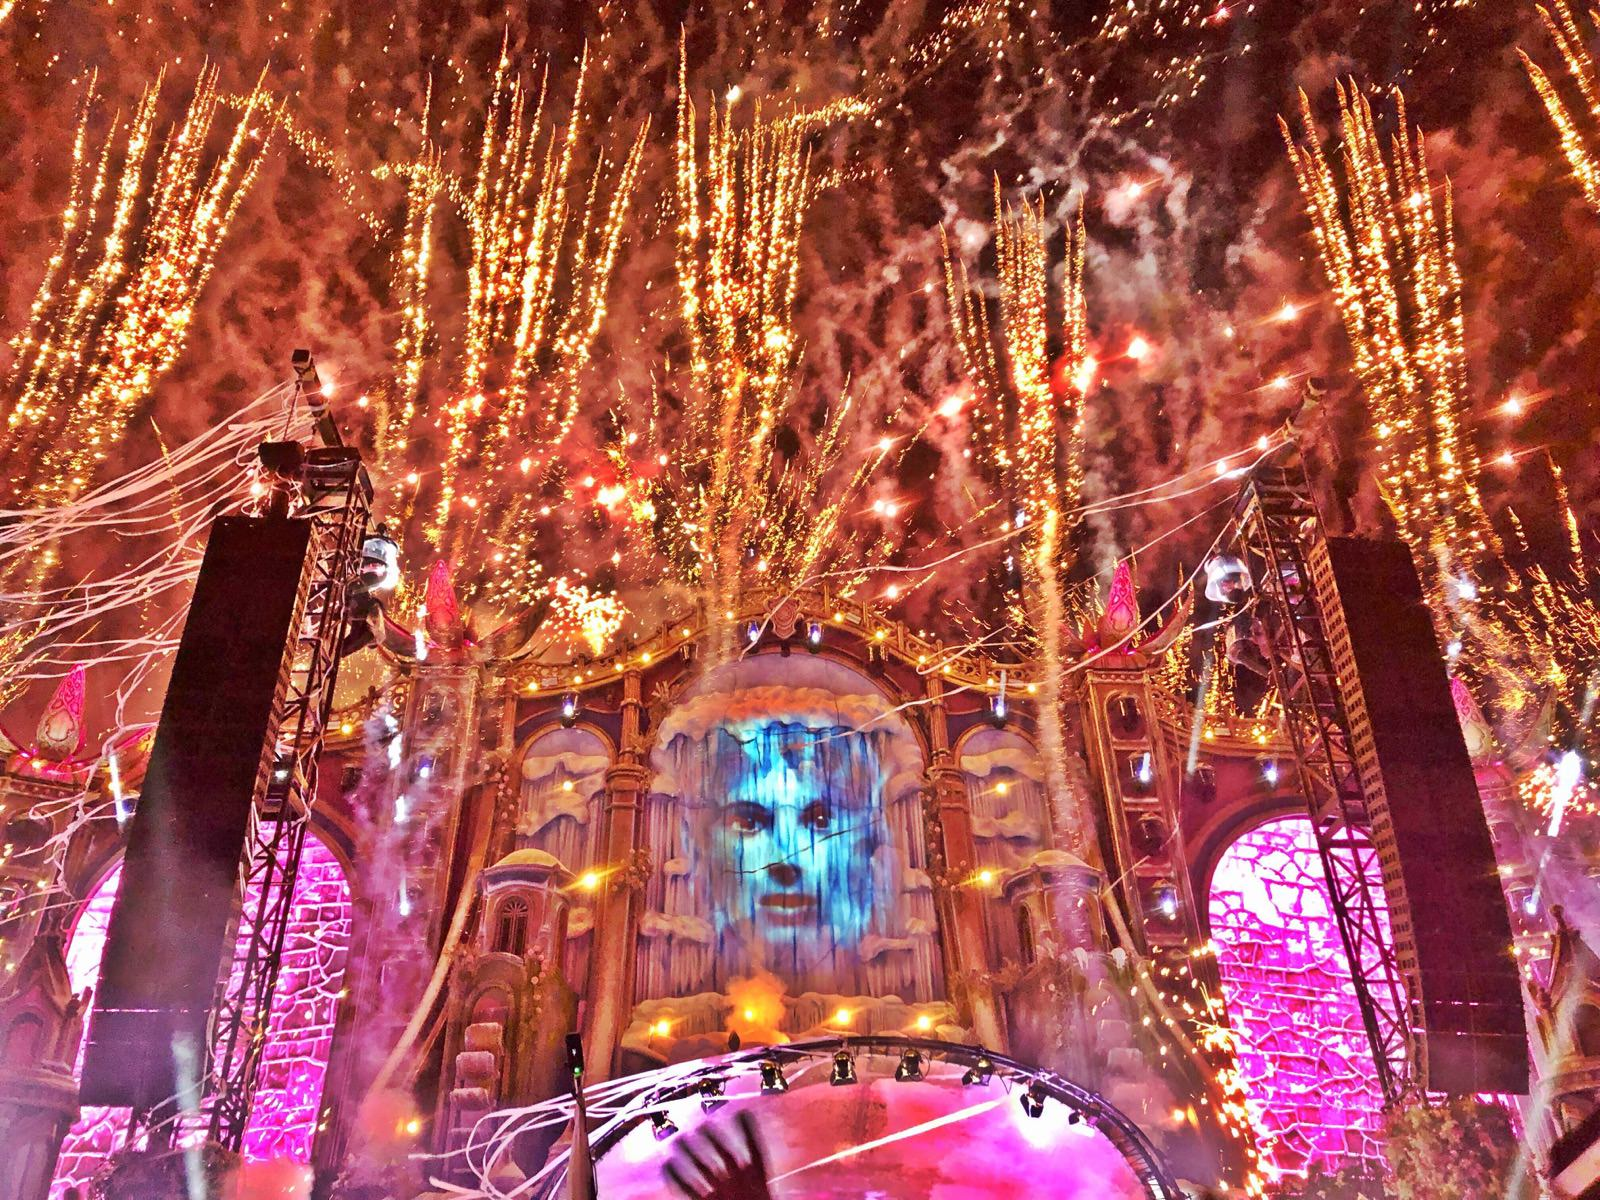 The Mainstage of Tomorrowland Winter